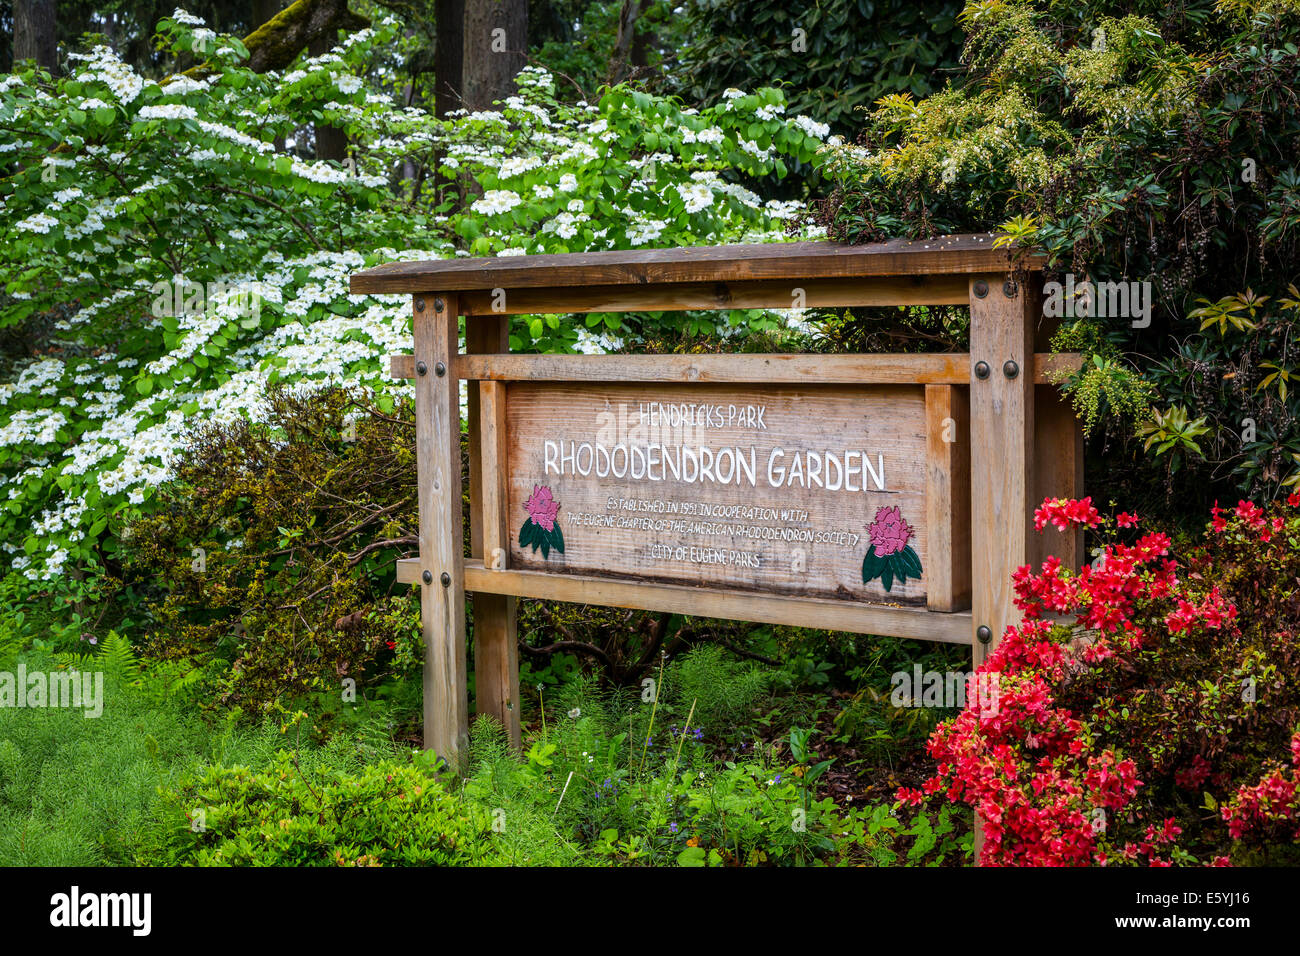 Hendricks Park and Gardens in Eugene, Oregon, USA. - Stock Image